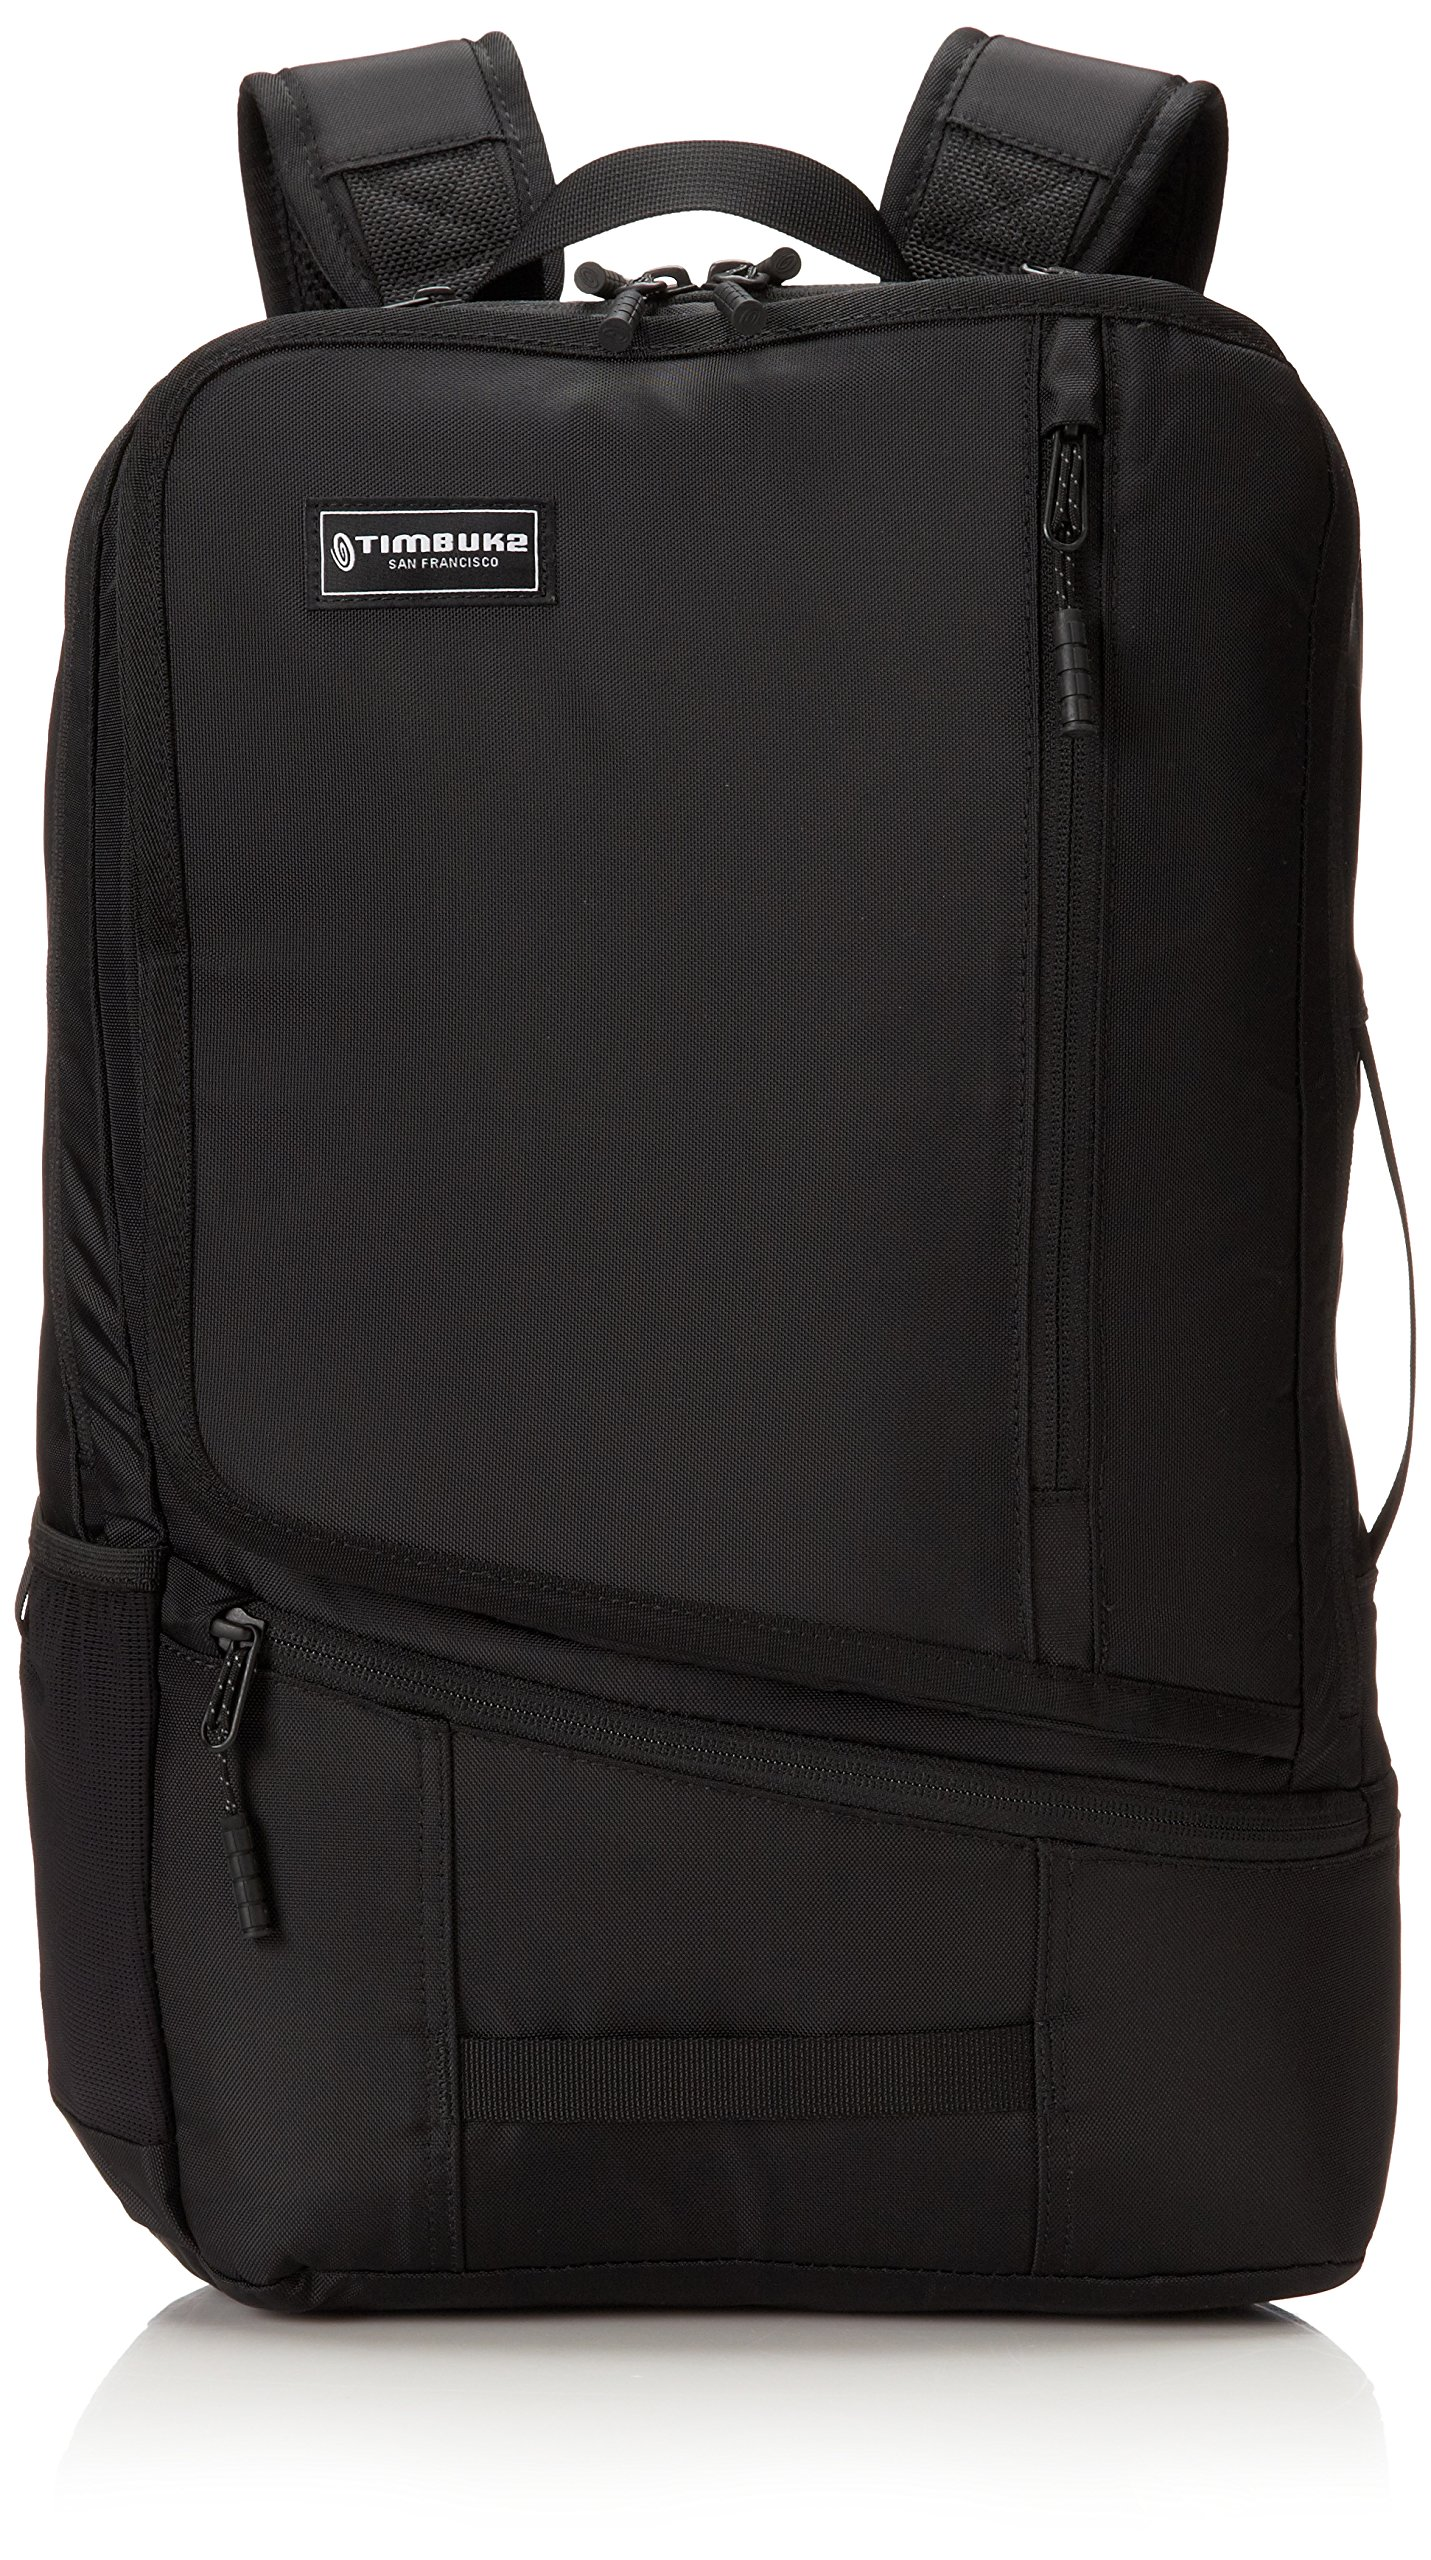 Timbuk2 Q Laptop Backpack, OS, Black by Timbuk2